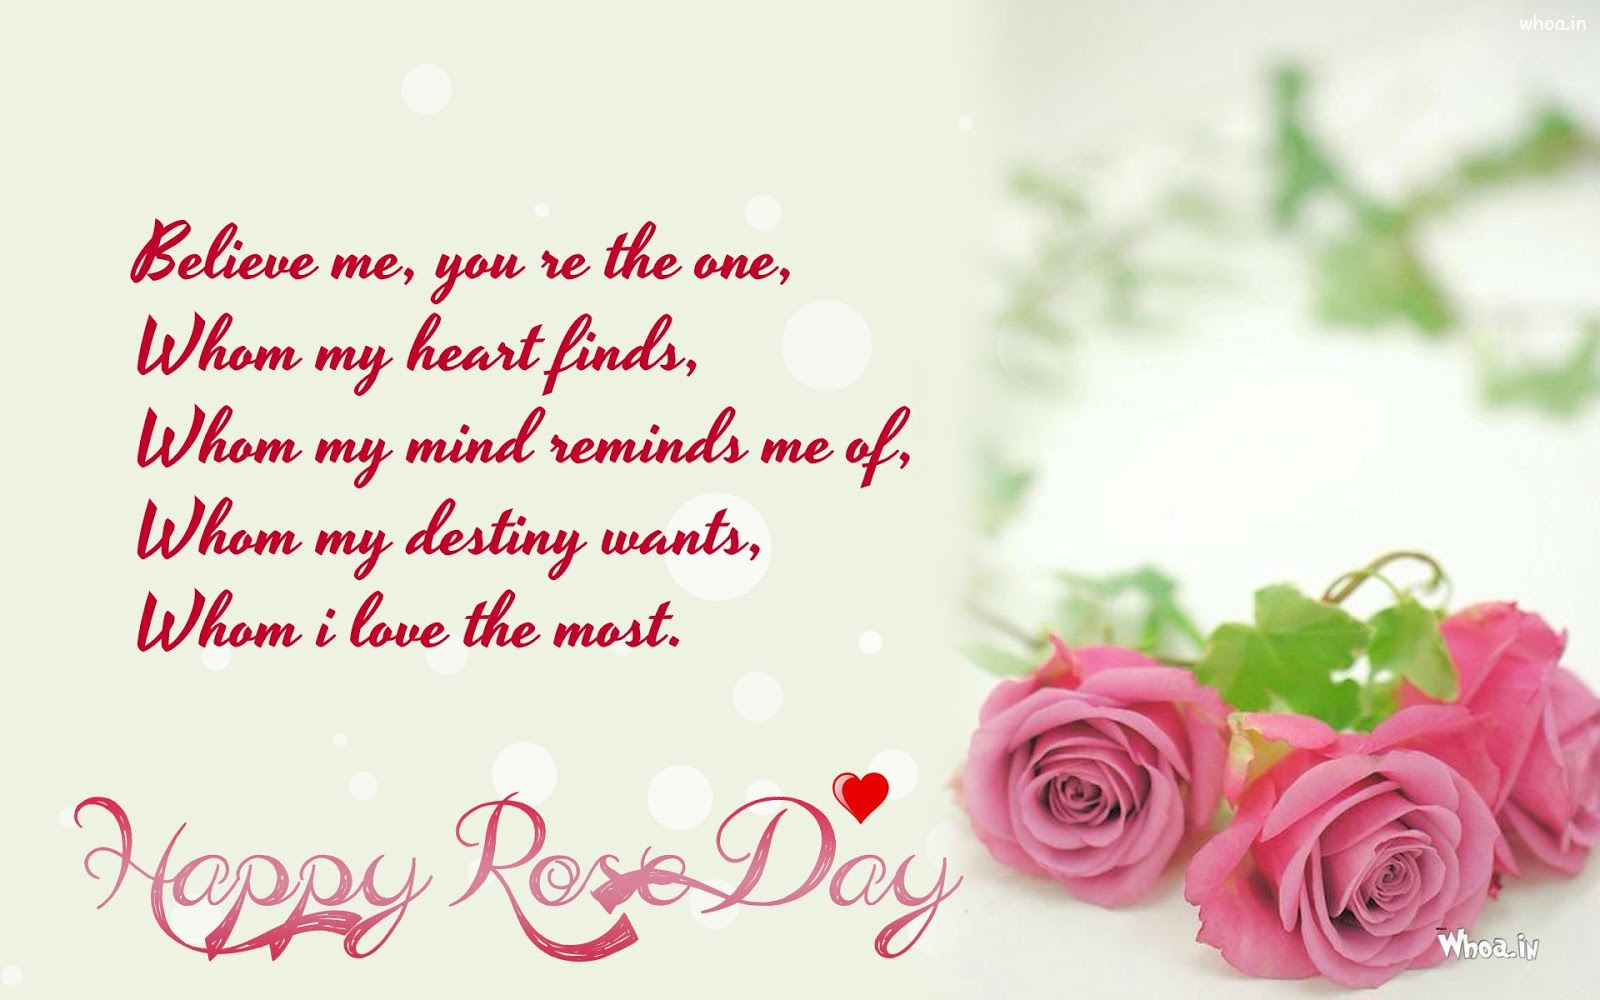 Rose day love quotes valentines day info rose day love quotes kristyandbryce Images